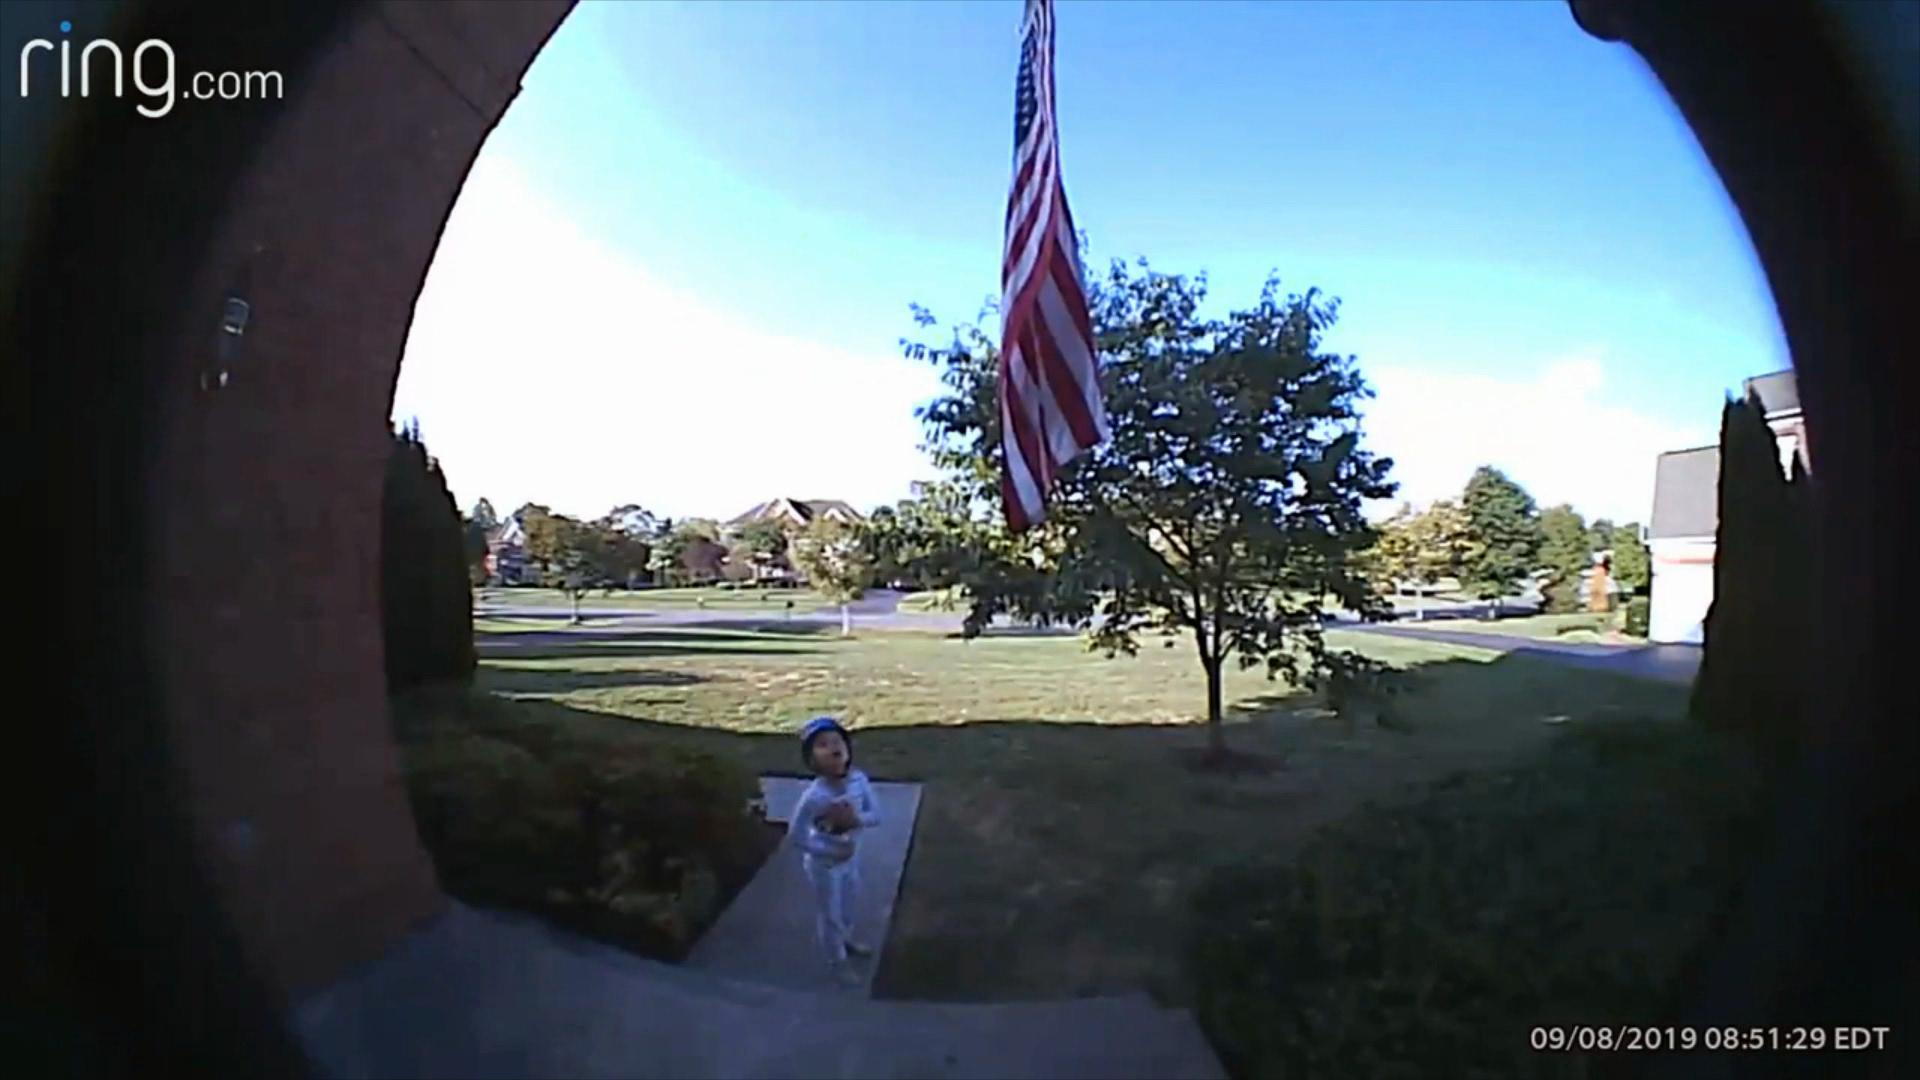 5-year-old captured on family's doorbell camera reciting the Pledge of Allegiance